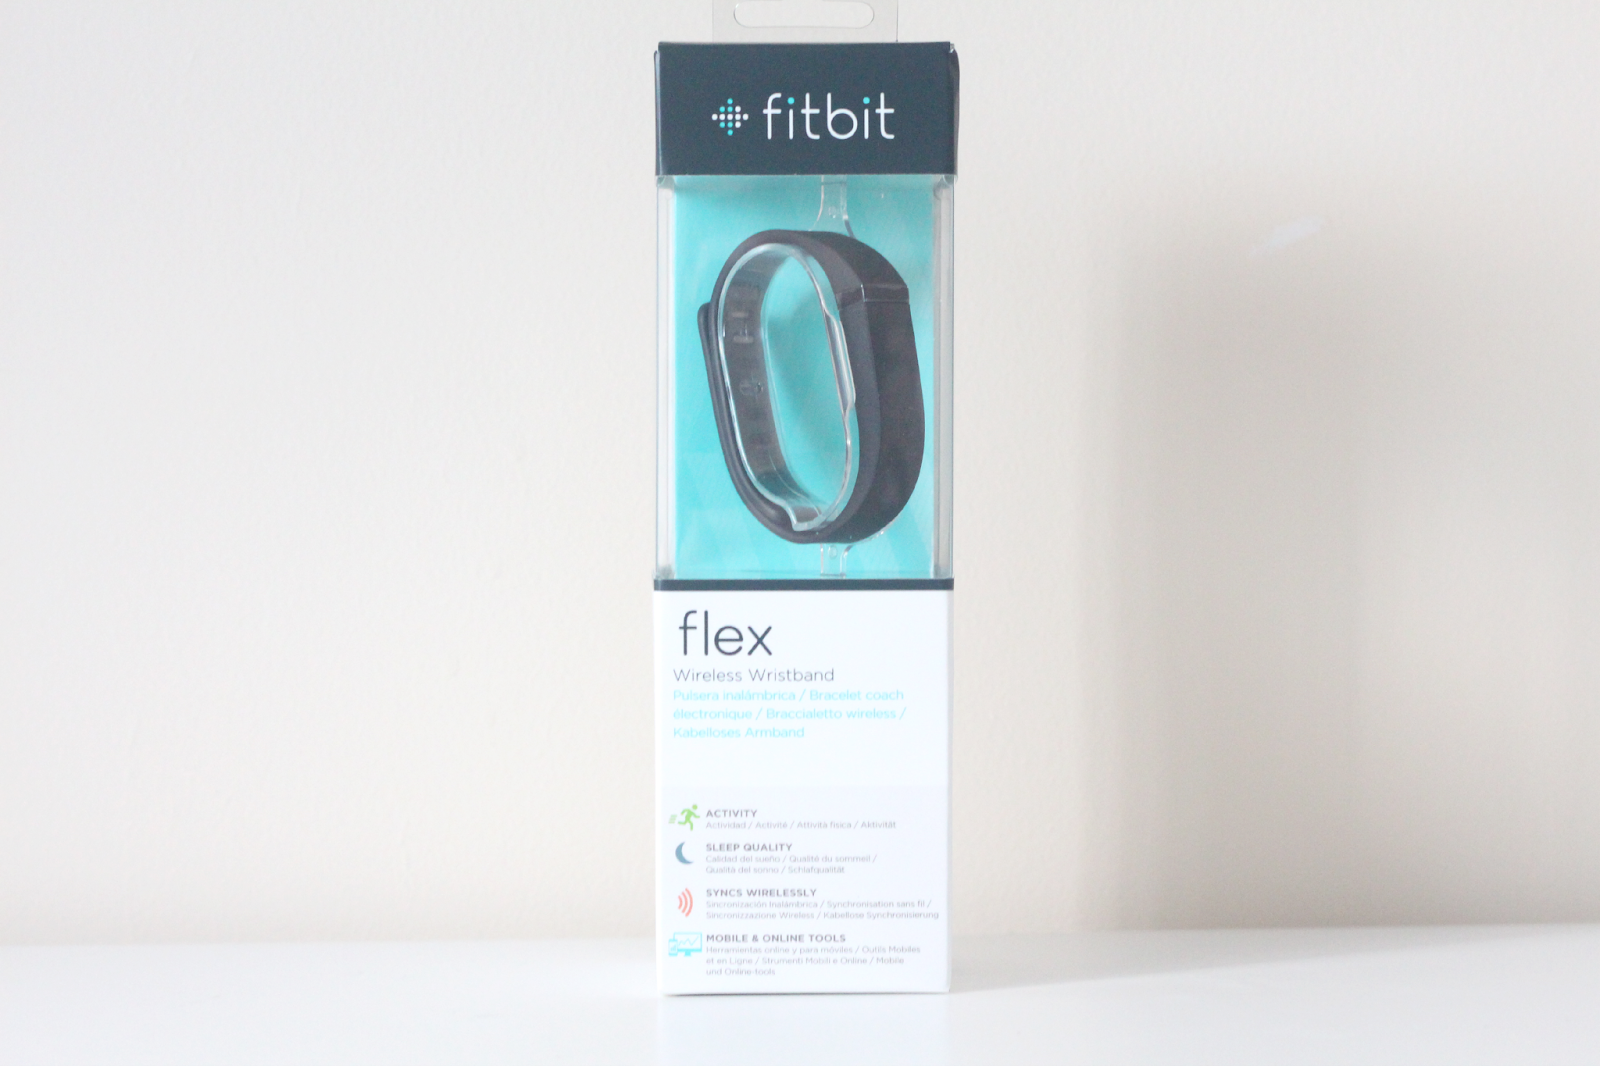 #12DAYSOFCHRISTMAS DAY 8 - Win a Fitbit Flex Activity Tracker